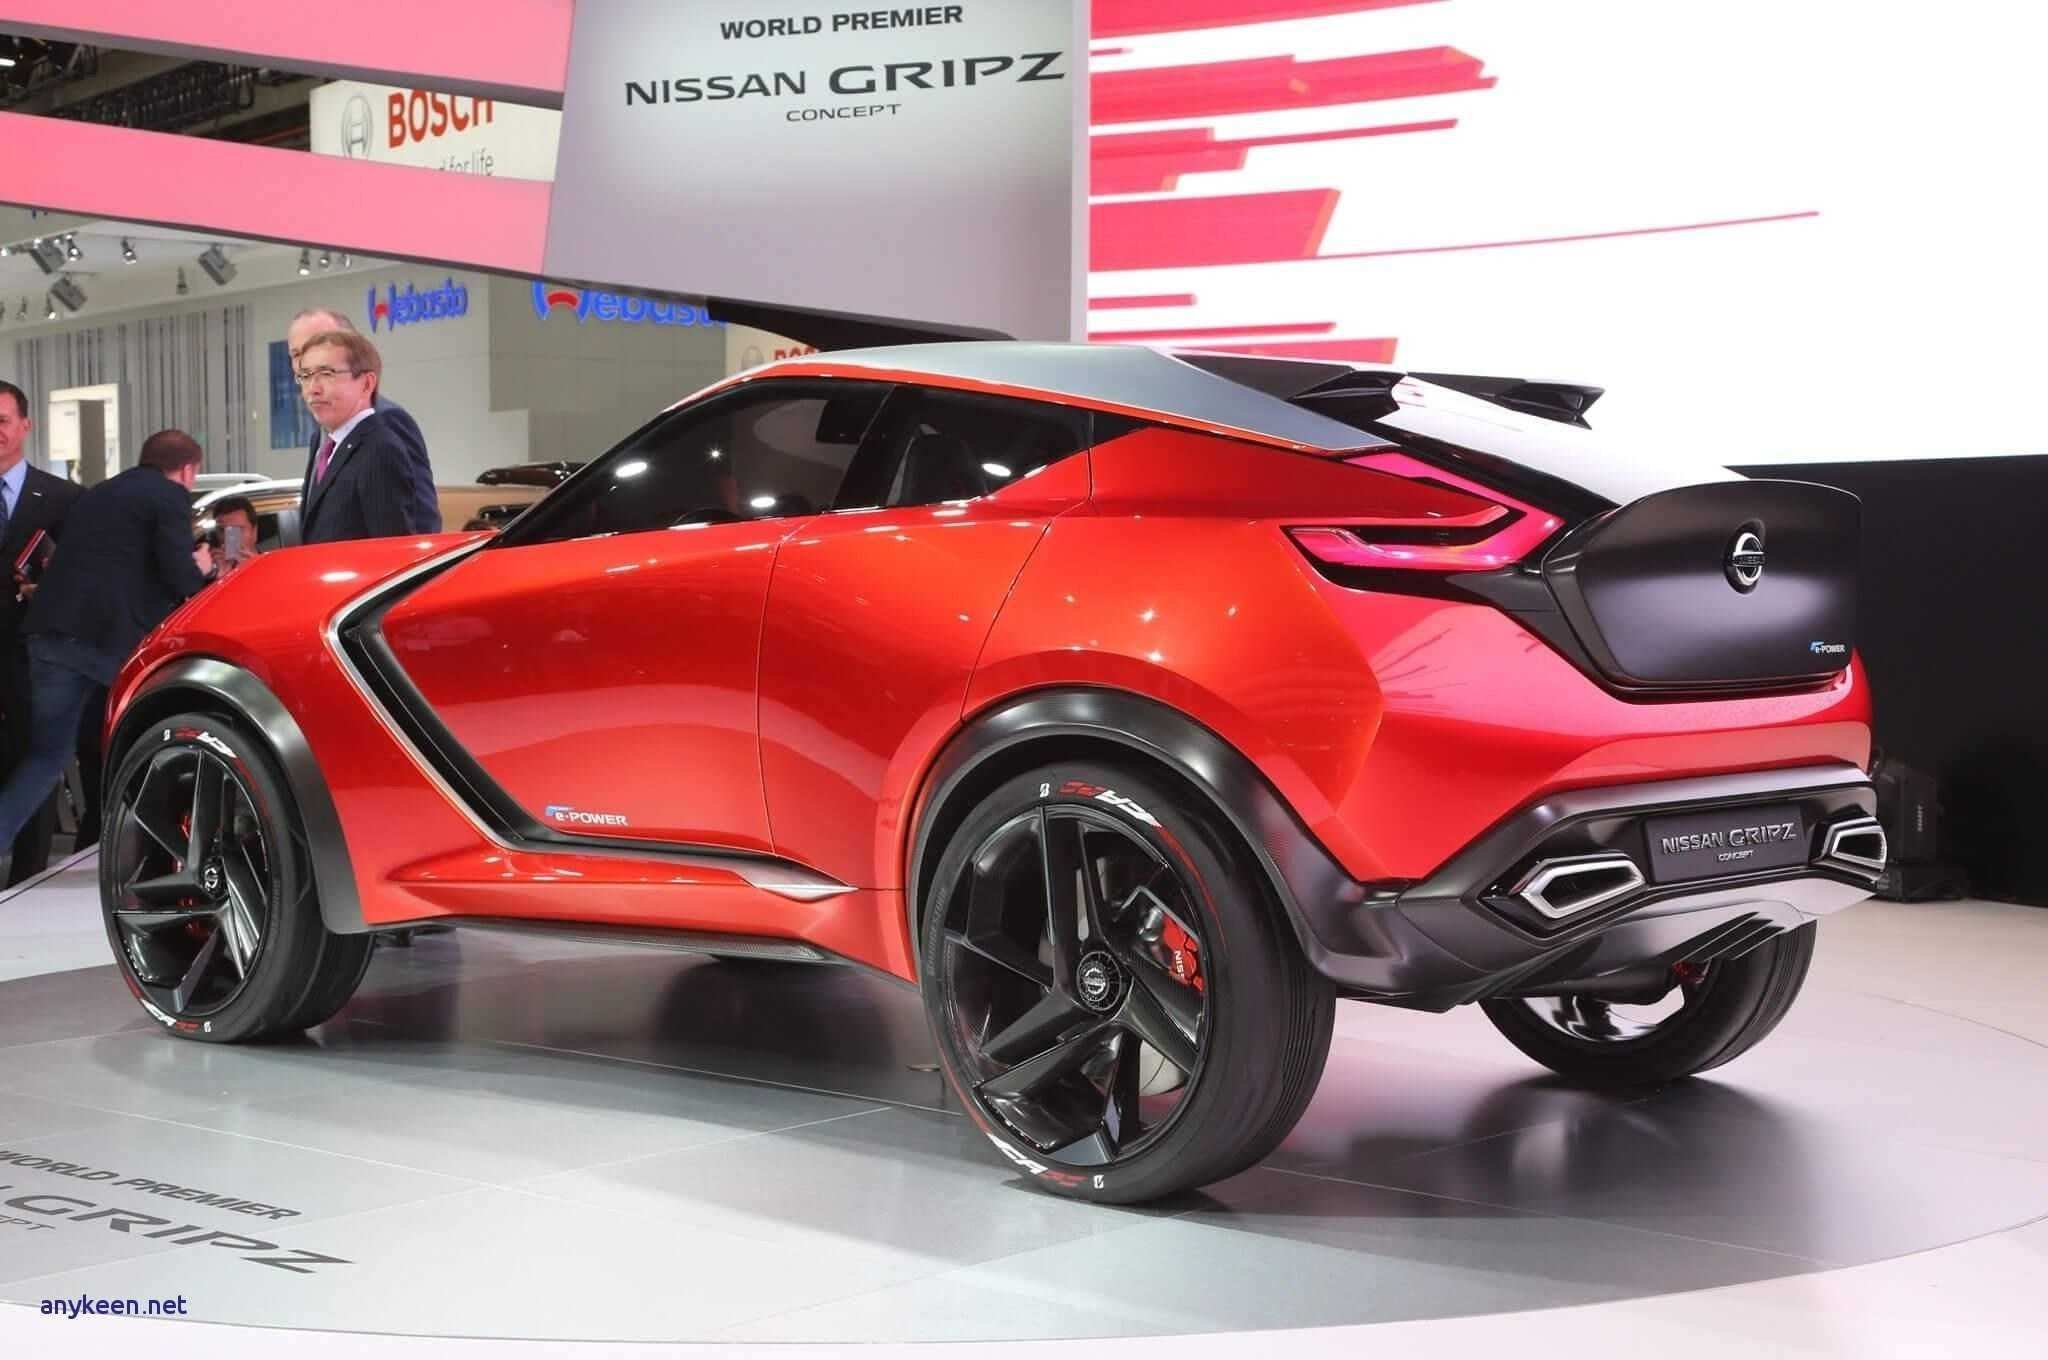 77 All New Nissan Juke 2020 New Concept Price by Nissan Juke 2020 New Concept